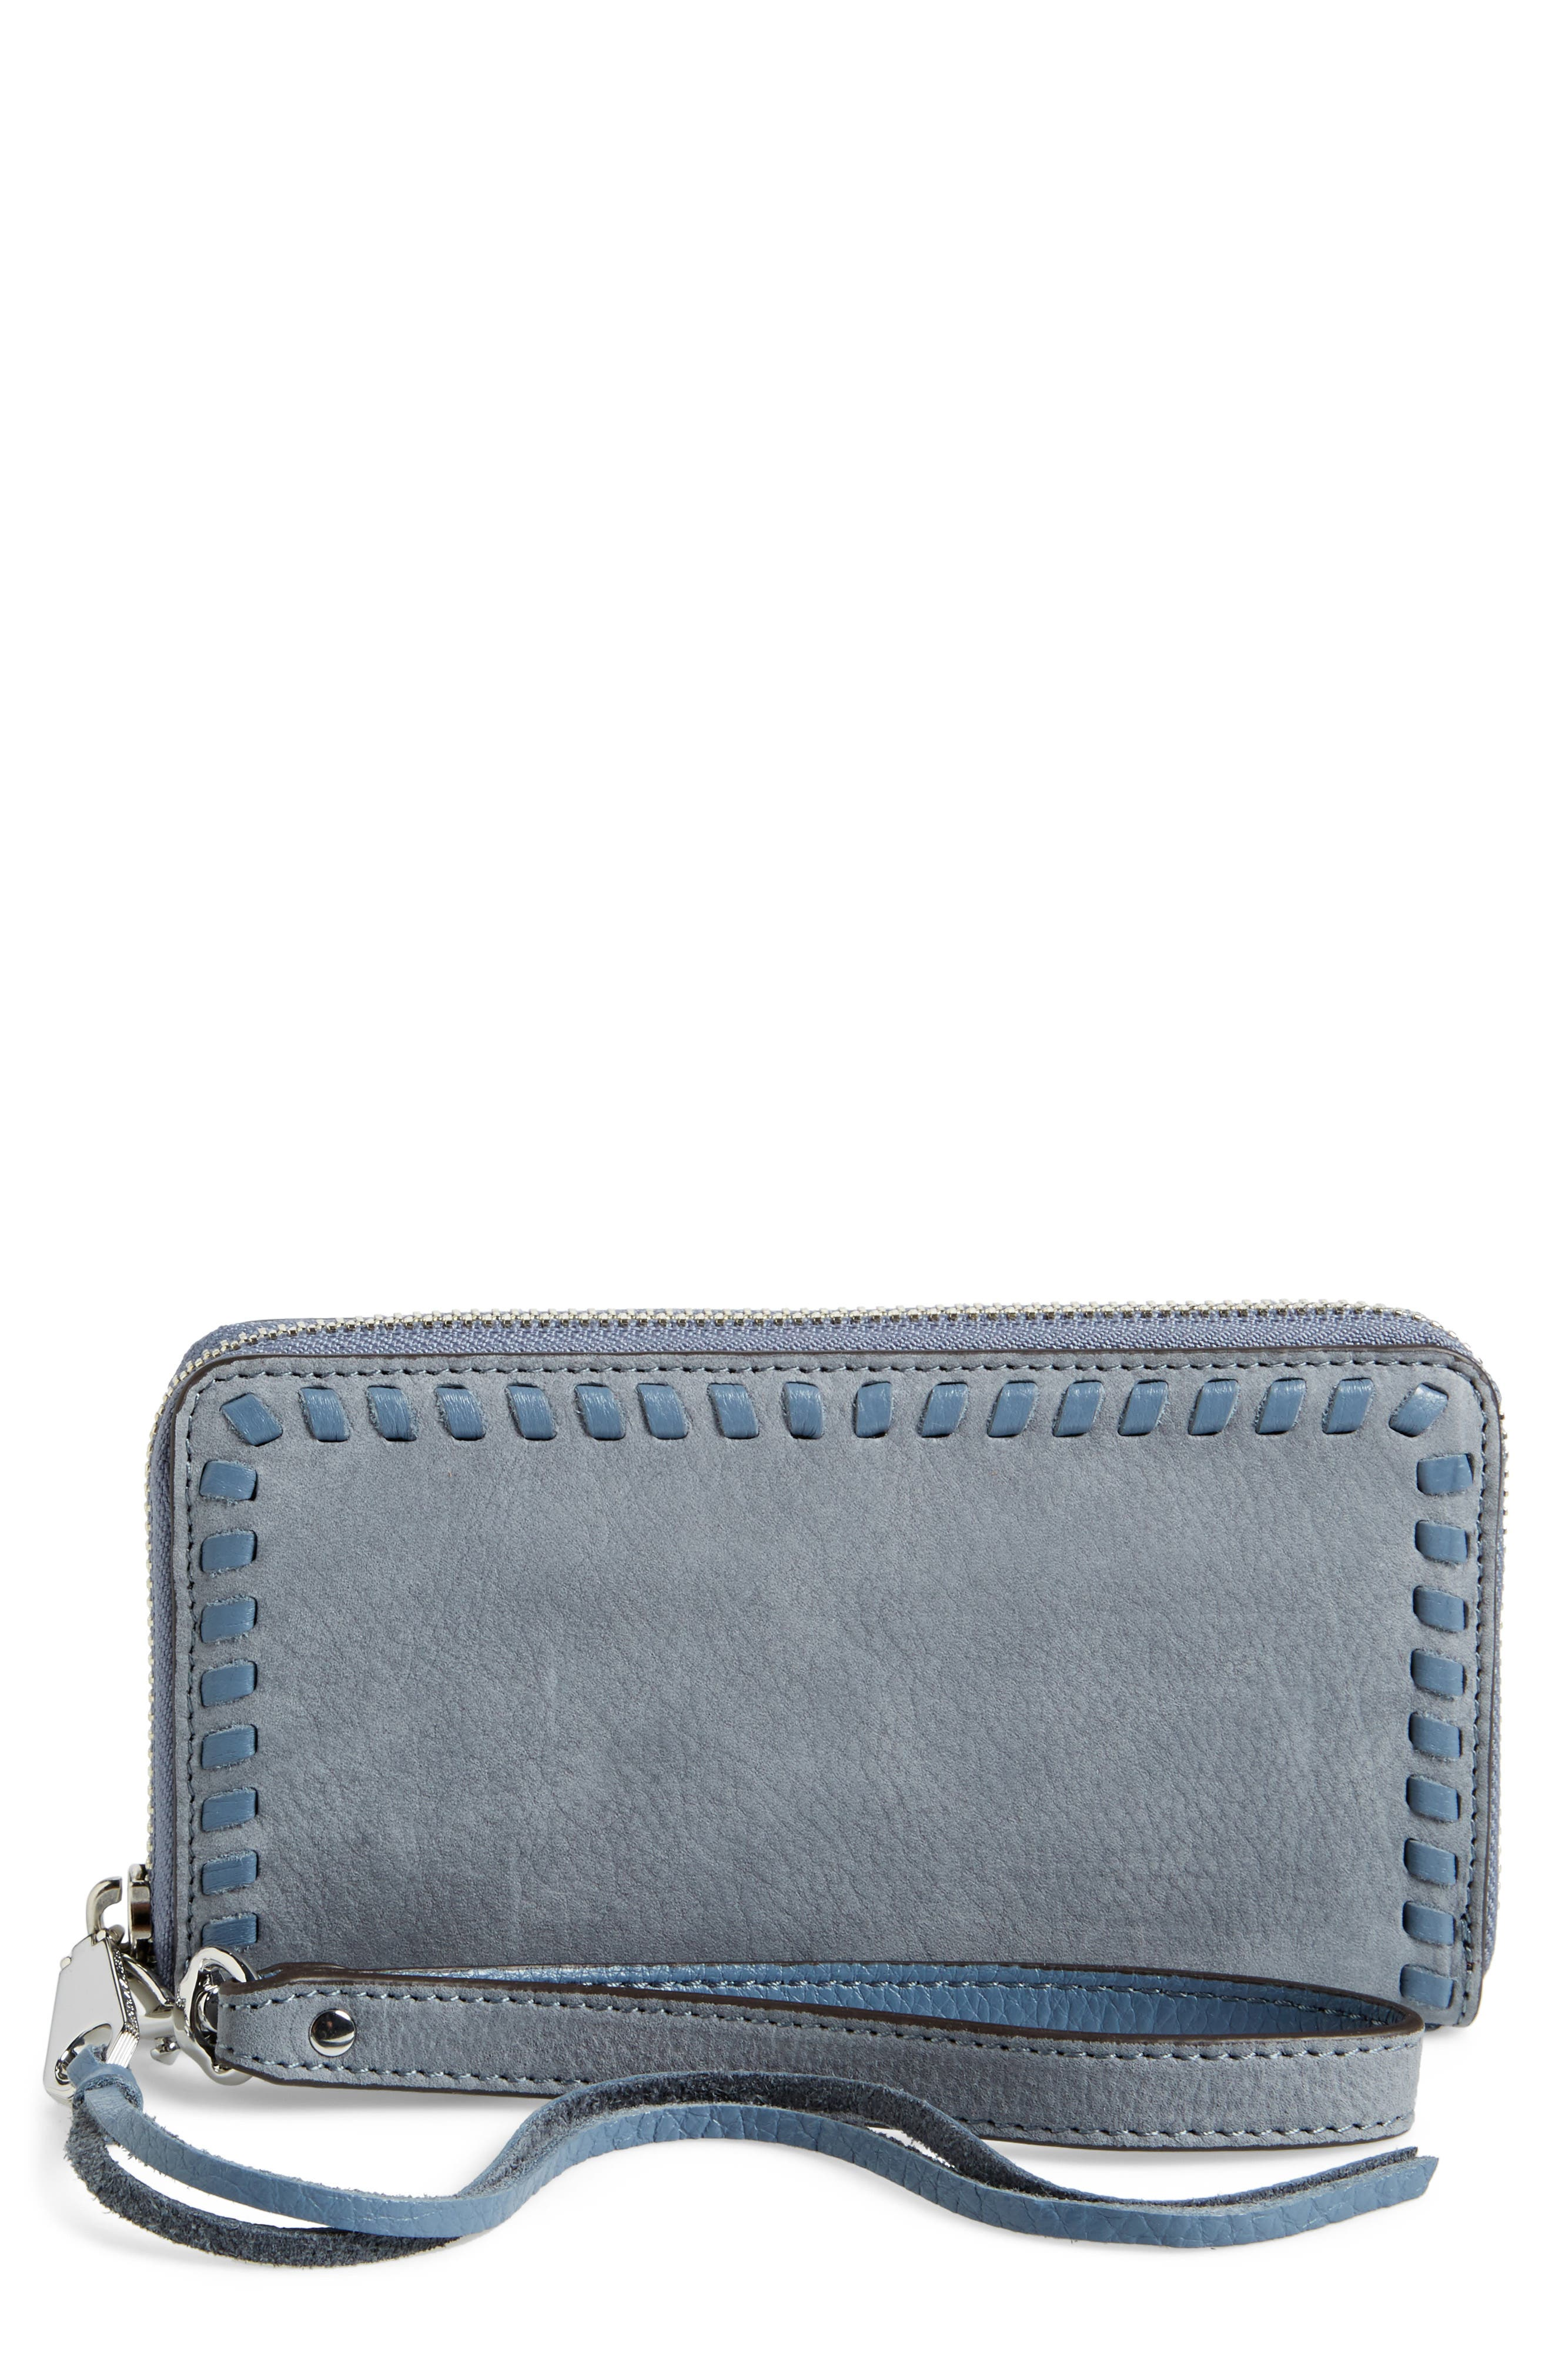 REBECCA MINKOFF Vanity Nubuck Leather Phone Wallet